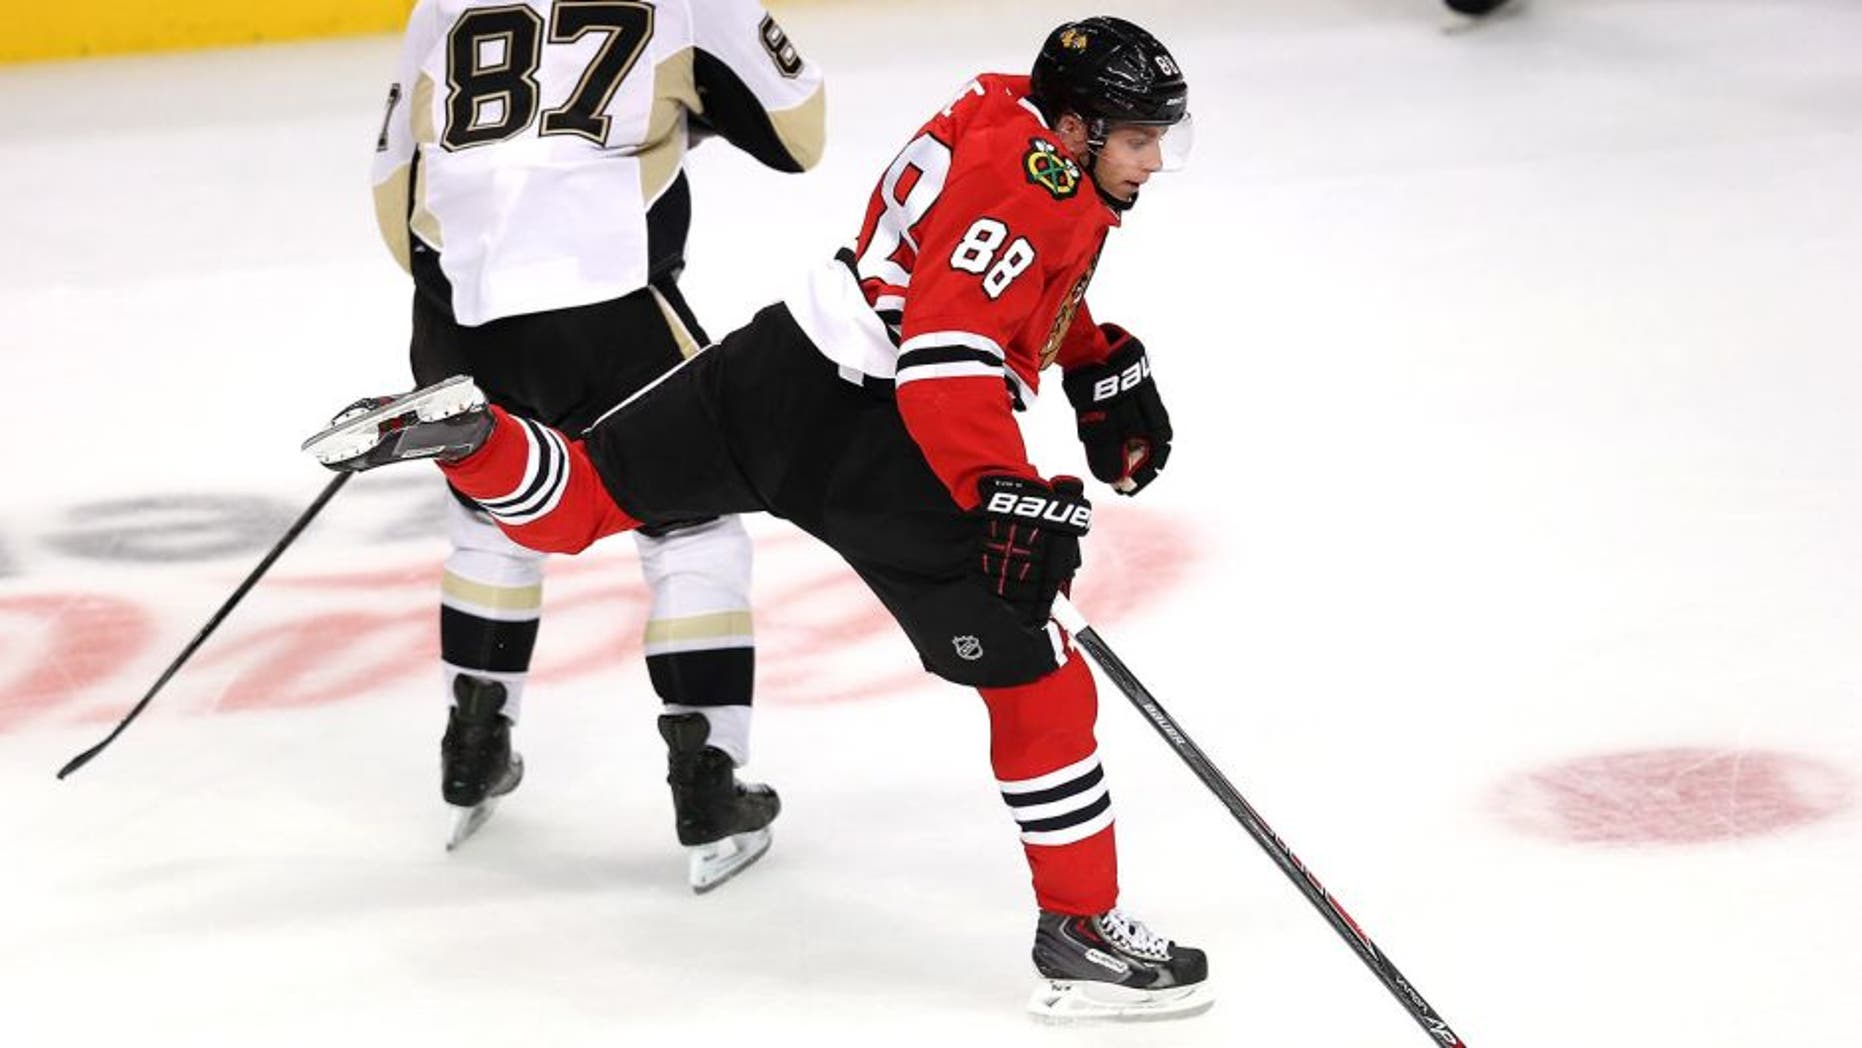 CHICAGO, IL - SEPTEMBER 19: Patrick Kane #88 of the Chicago Blackhawks leaps to avoid colliding with Sidney Crosby #87 of the Pittsburgh Penguins during an exhibition game at United Center on September 19, 2013 in Chicago, Illinois. The Penguins defeated the Blackhawks 4-3 in a shootout. (Photo by Jonathan Daniel/Getty Images)